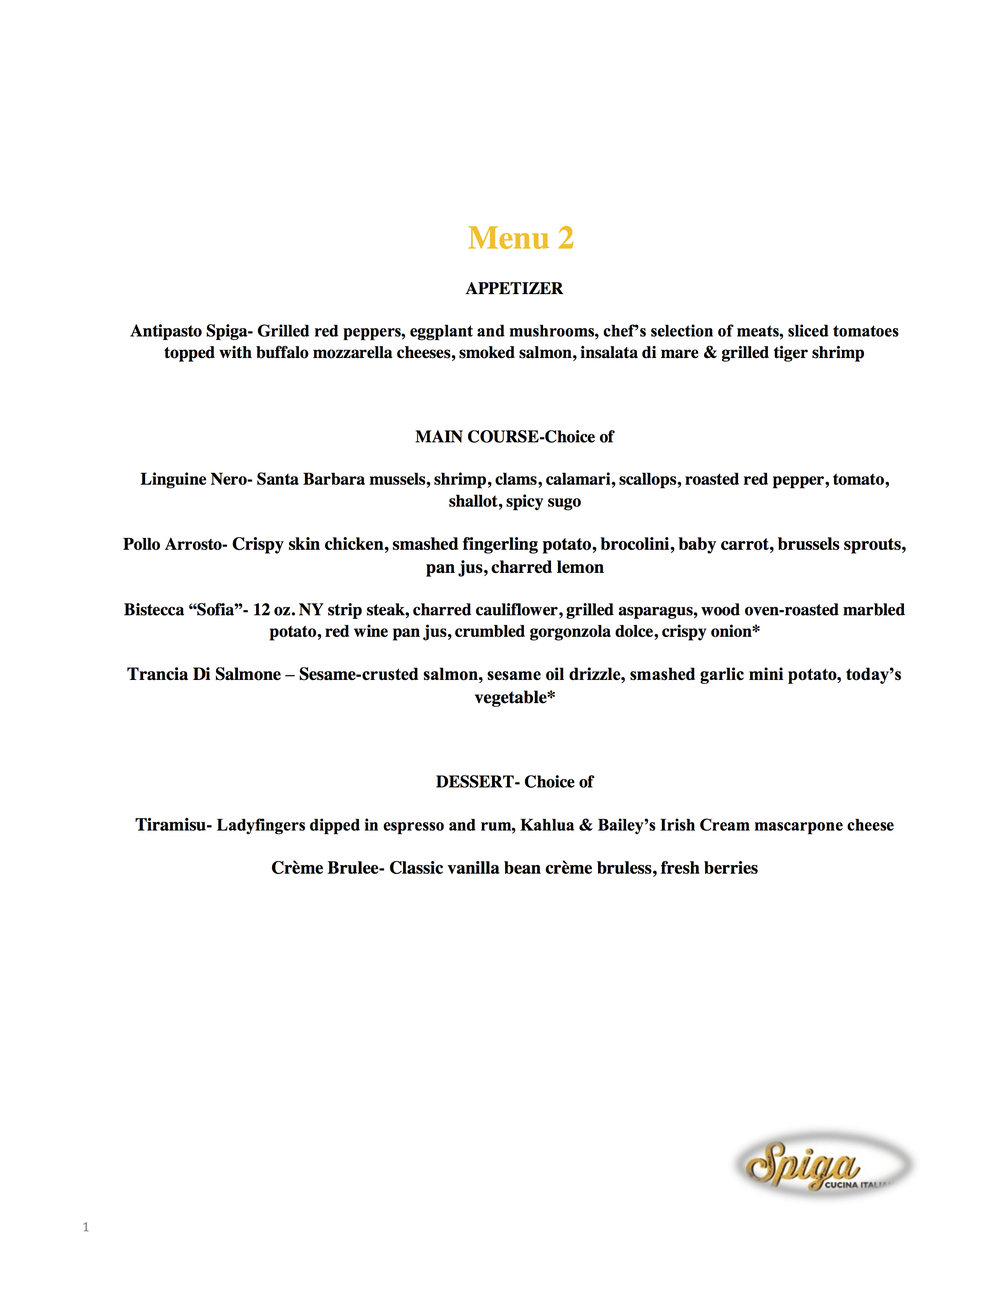 revised dinner group menus 2.jpg